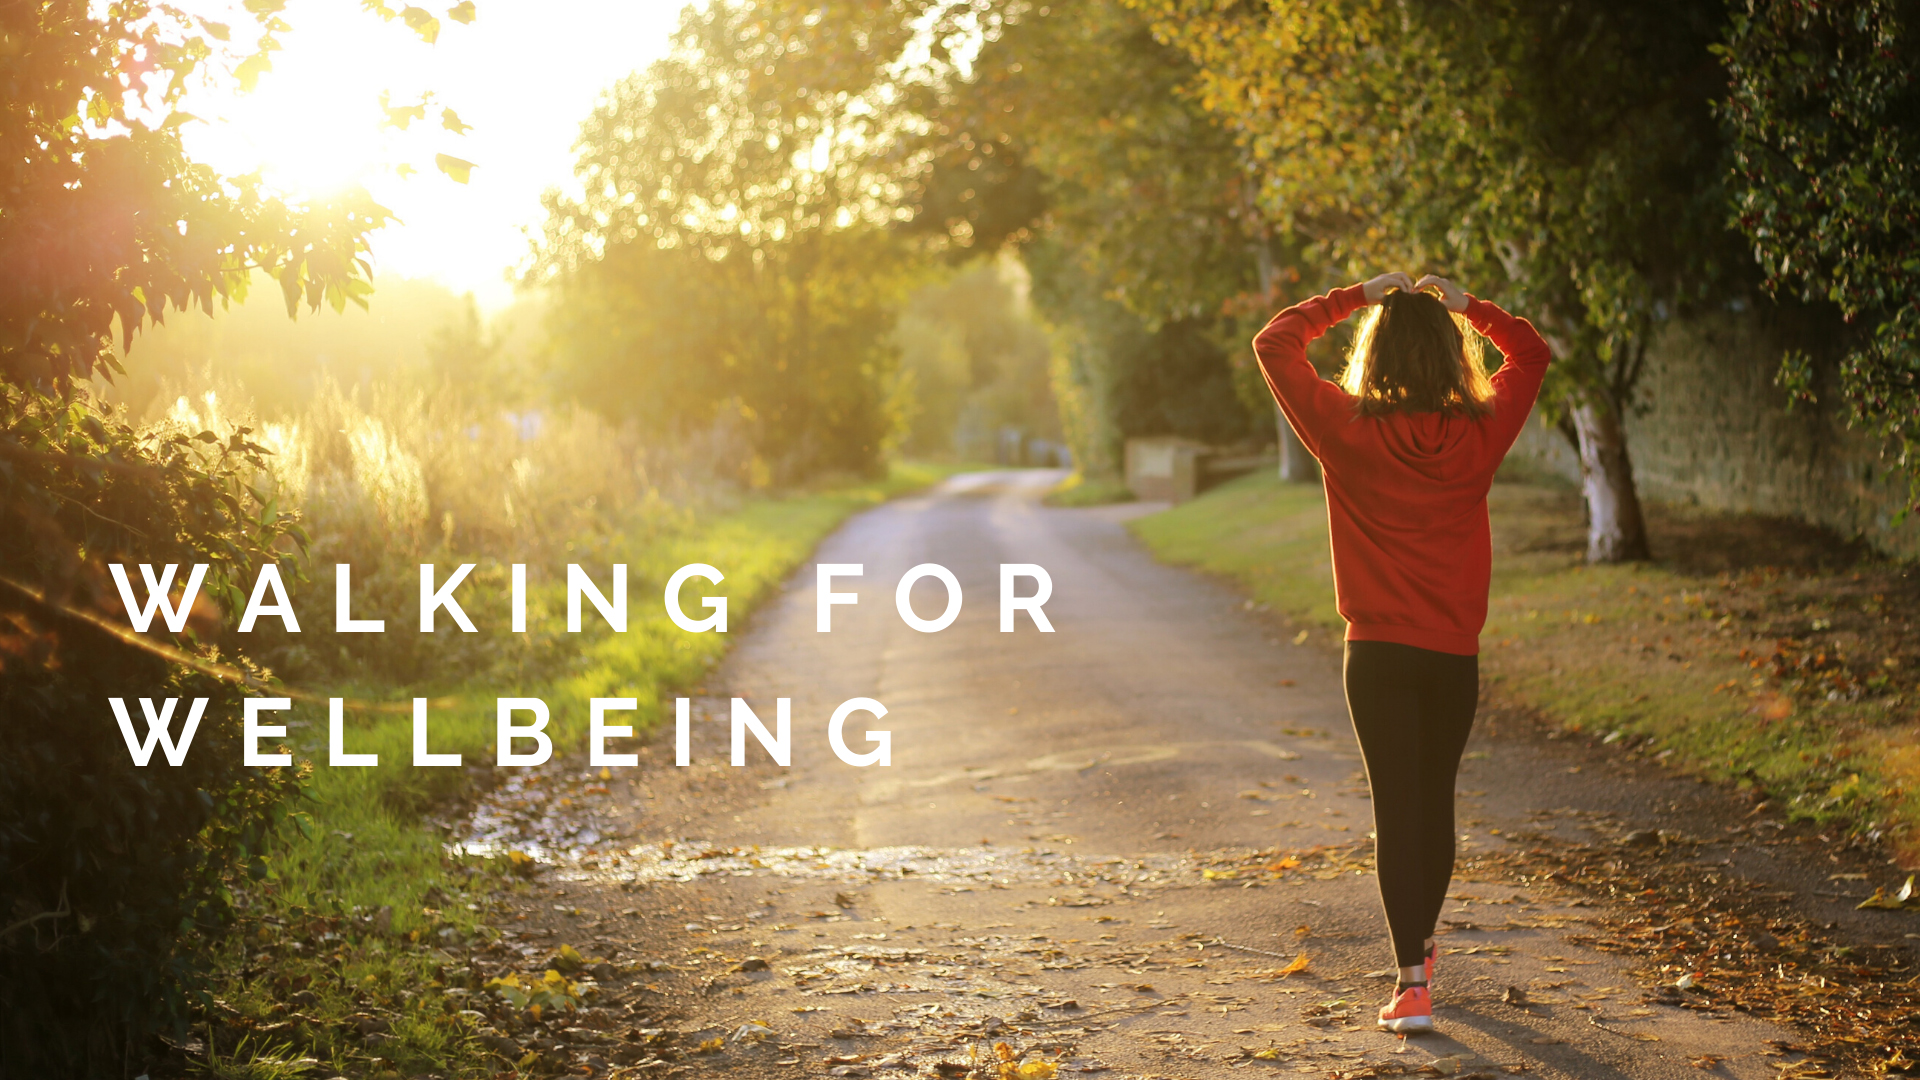 Walking For Wellbeing